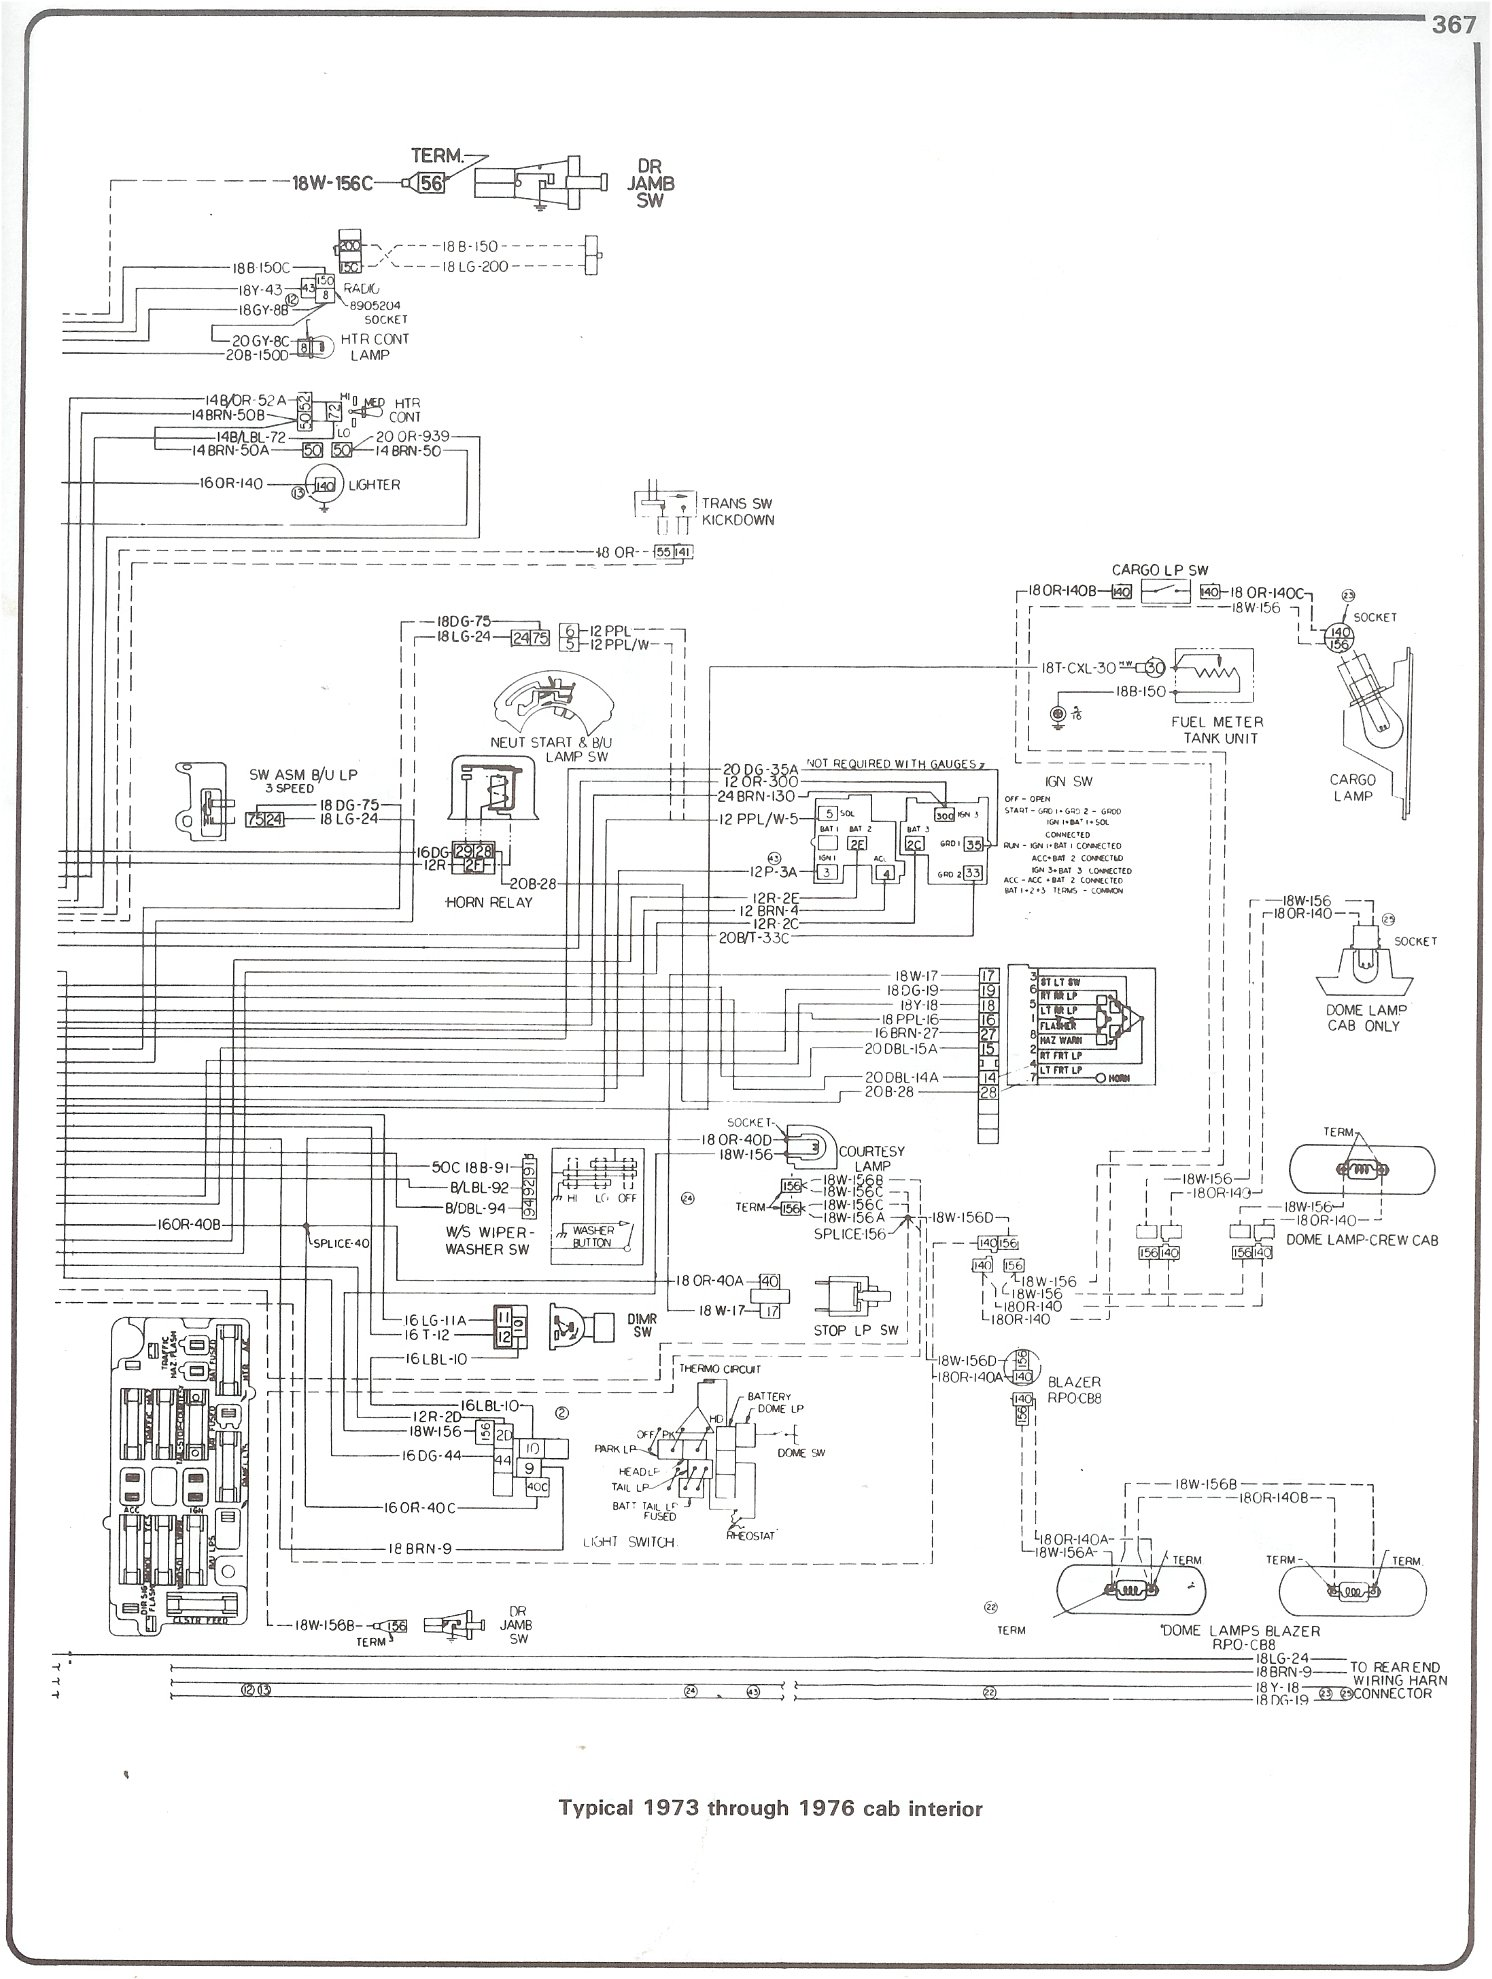 CFD01 1969 Chevy C20 Wiring Diagram | Digital Resources on 1984 chevy s10 wiring diagram, 1985 chevy pickup c10 305 engine wiring diagram, 65 c10 underhood wiring diagram, 1972 chevy starter wiring diagram, 1969 chevy 1500 ac wiring diagram, 64 c10 cab wiring diagram, 82 chevy pickup engine wiring diagram, 1966 chevy c10 engine wiring diagram,